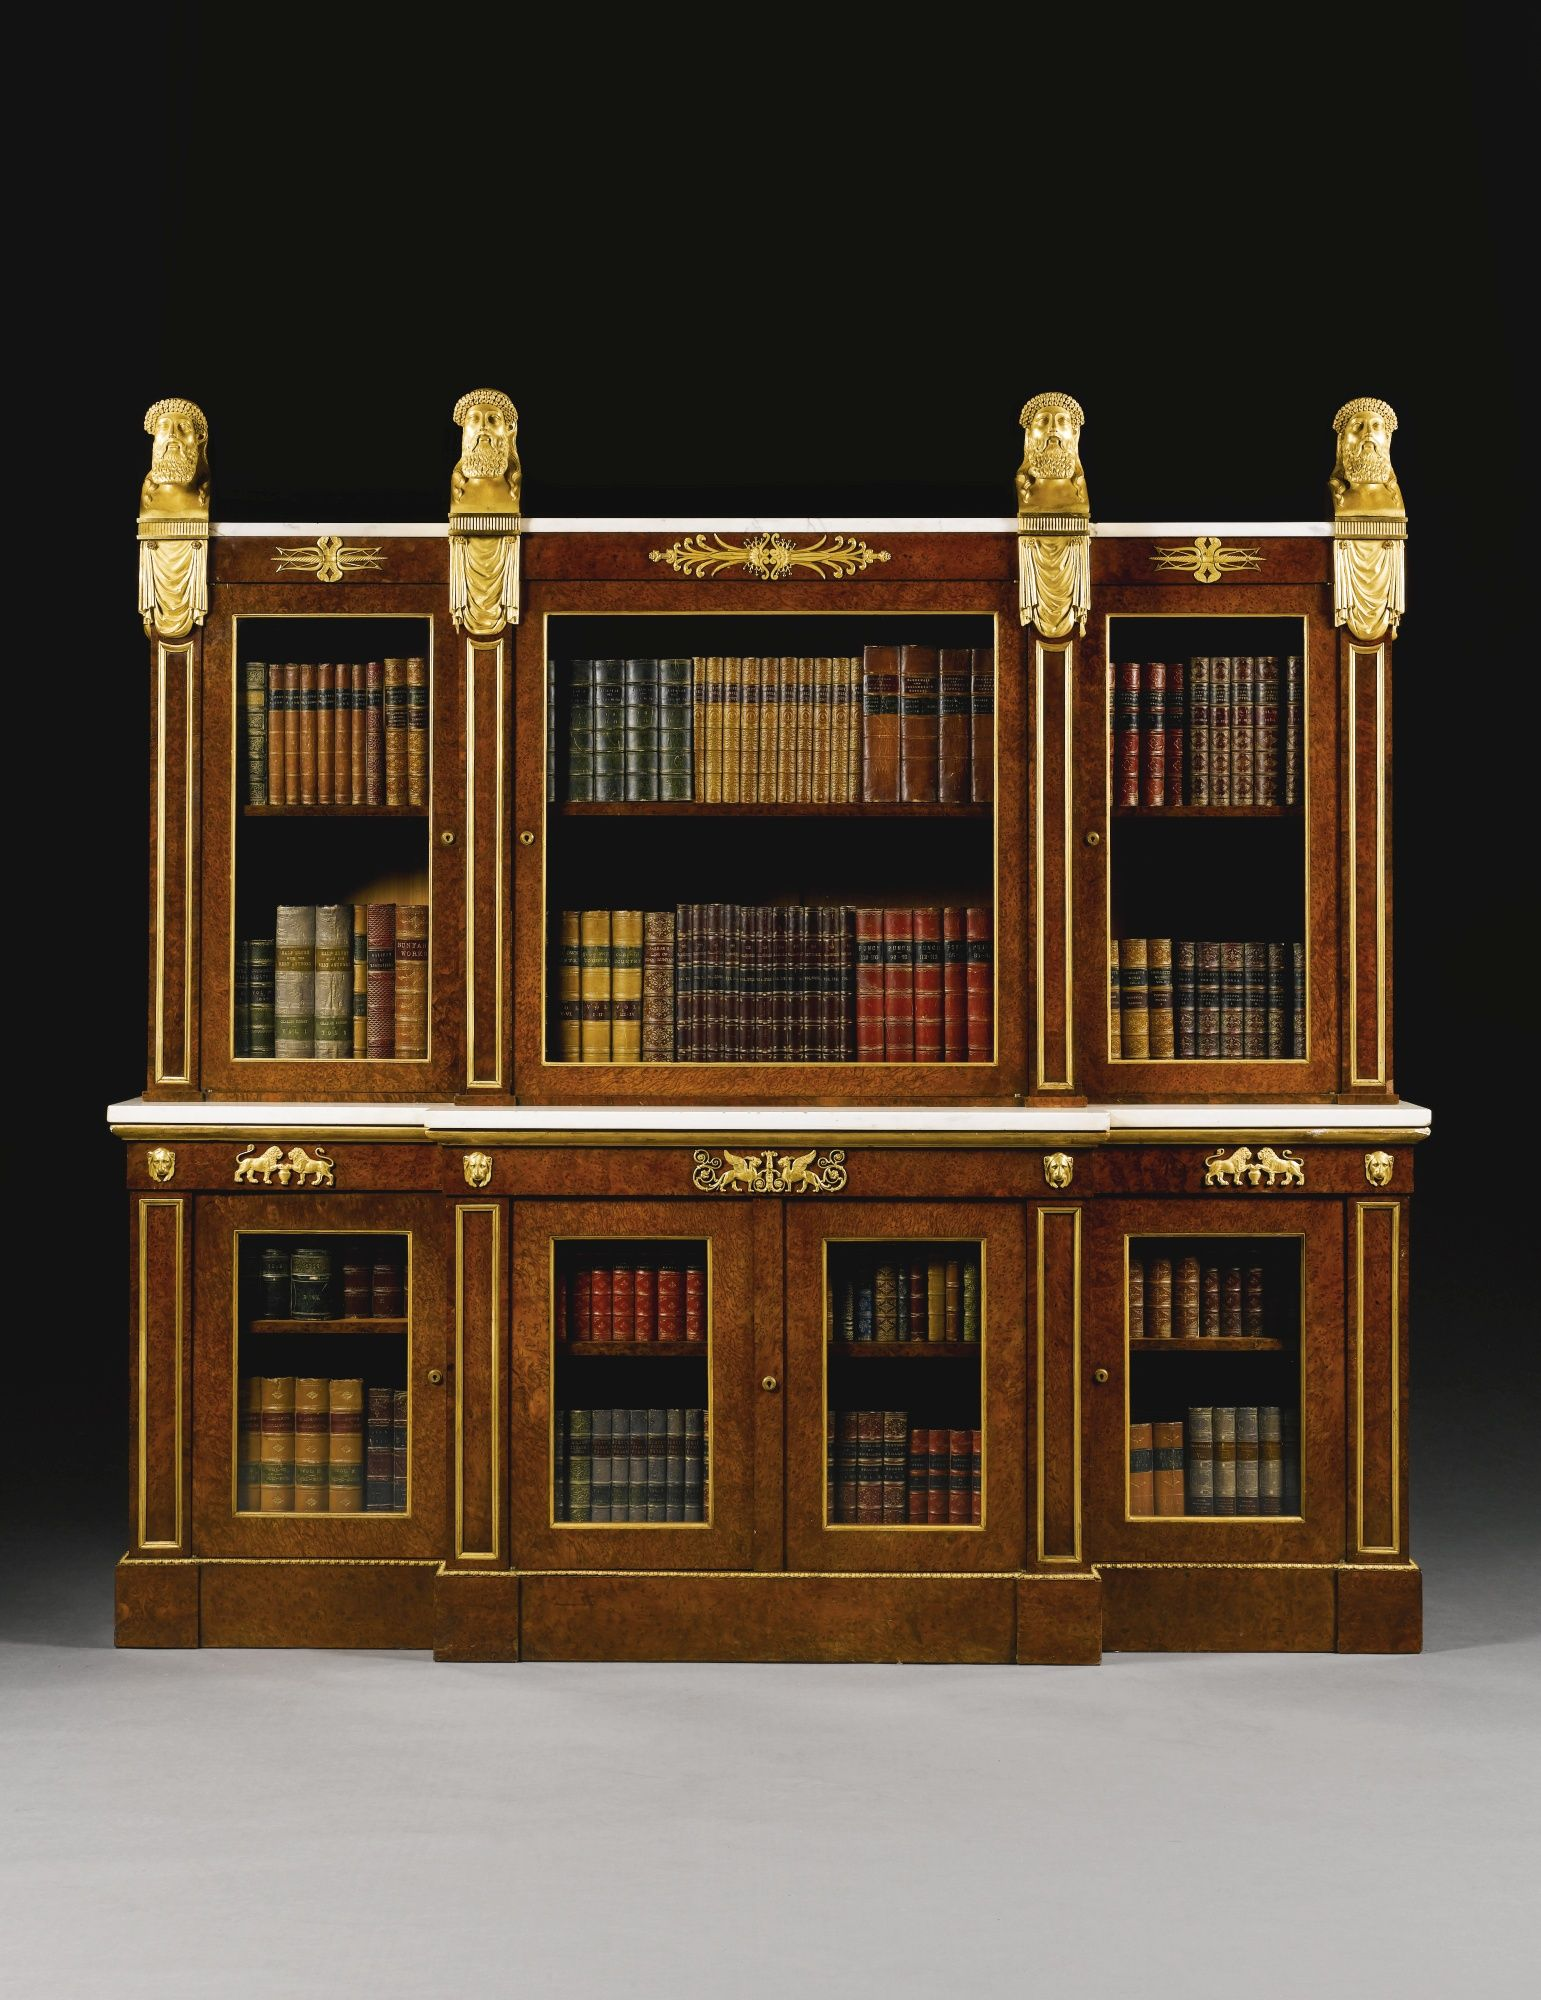 A Royal Regency Ormolu Mounted Burr Yew Breakfront Bookcase Supplied To  George, Prince Of Wales For Carlton House, London, By Marsh And Tatham In  Probably ...